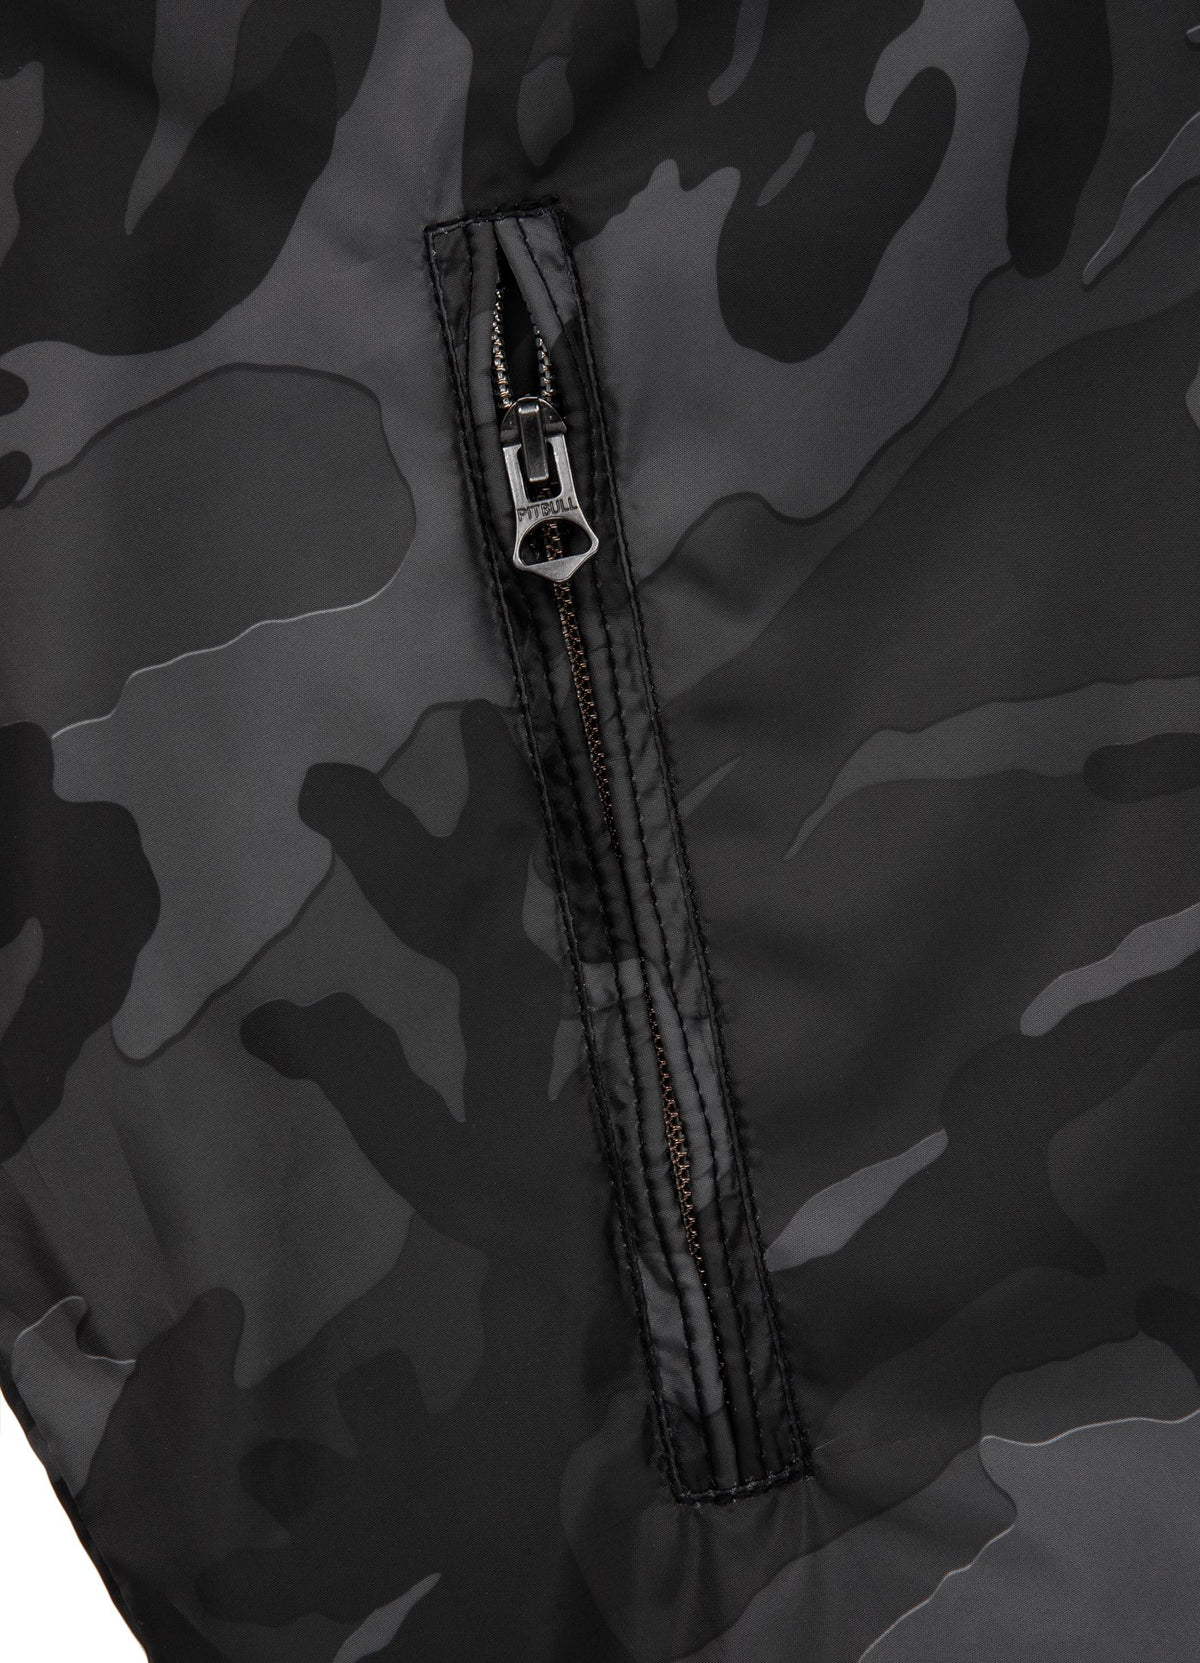 HANSEL Thin Hooded Nylon Jacket All Black Camo - Pitbull West Coast U.S.A.